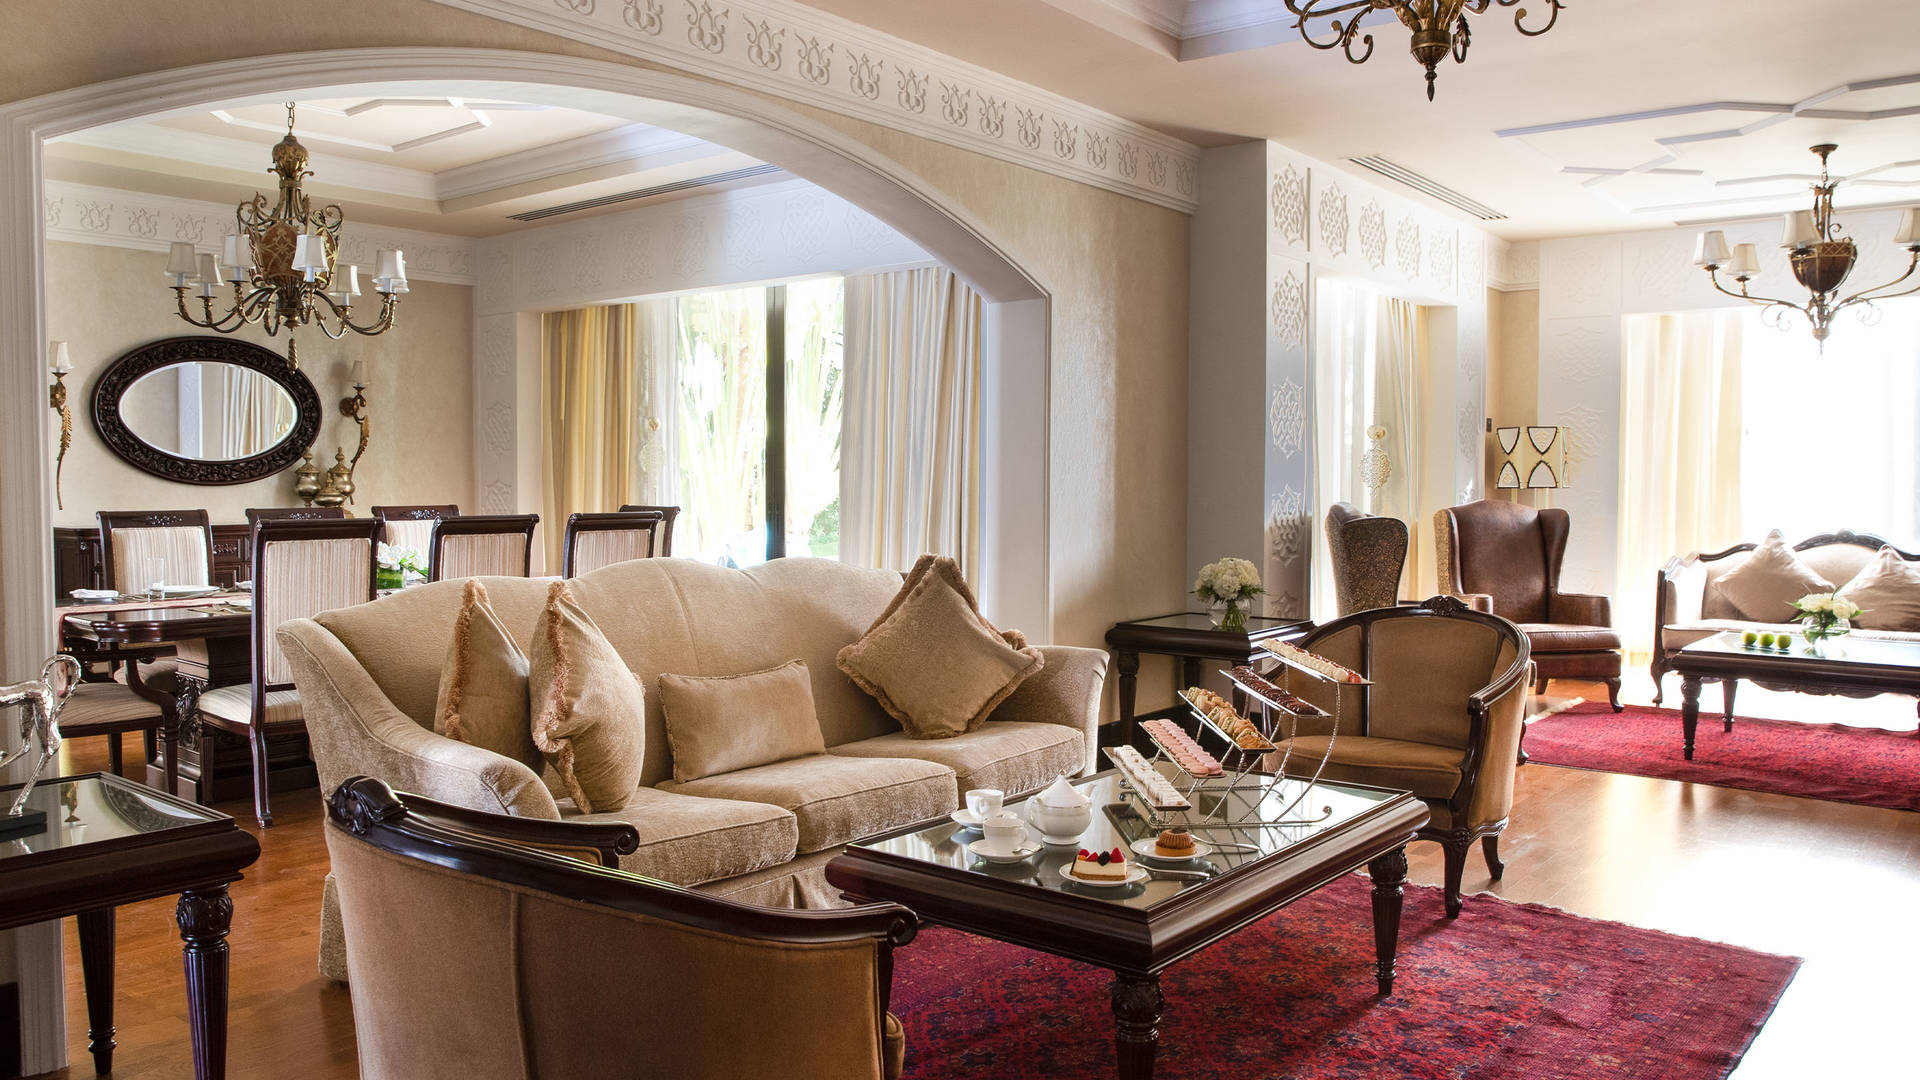 Jumeirah Zabeel Saray Royal Residence Beachview living room area